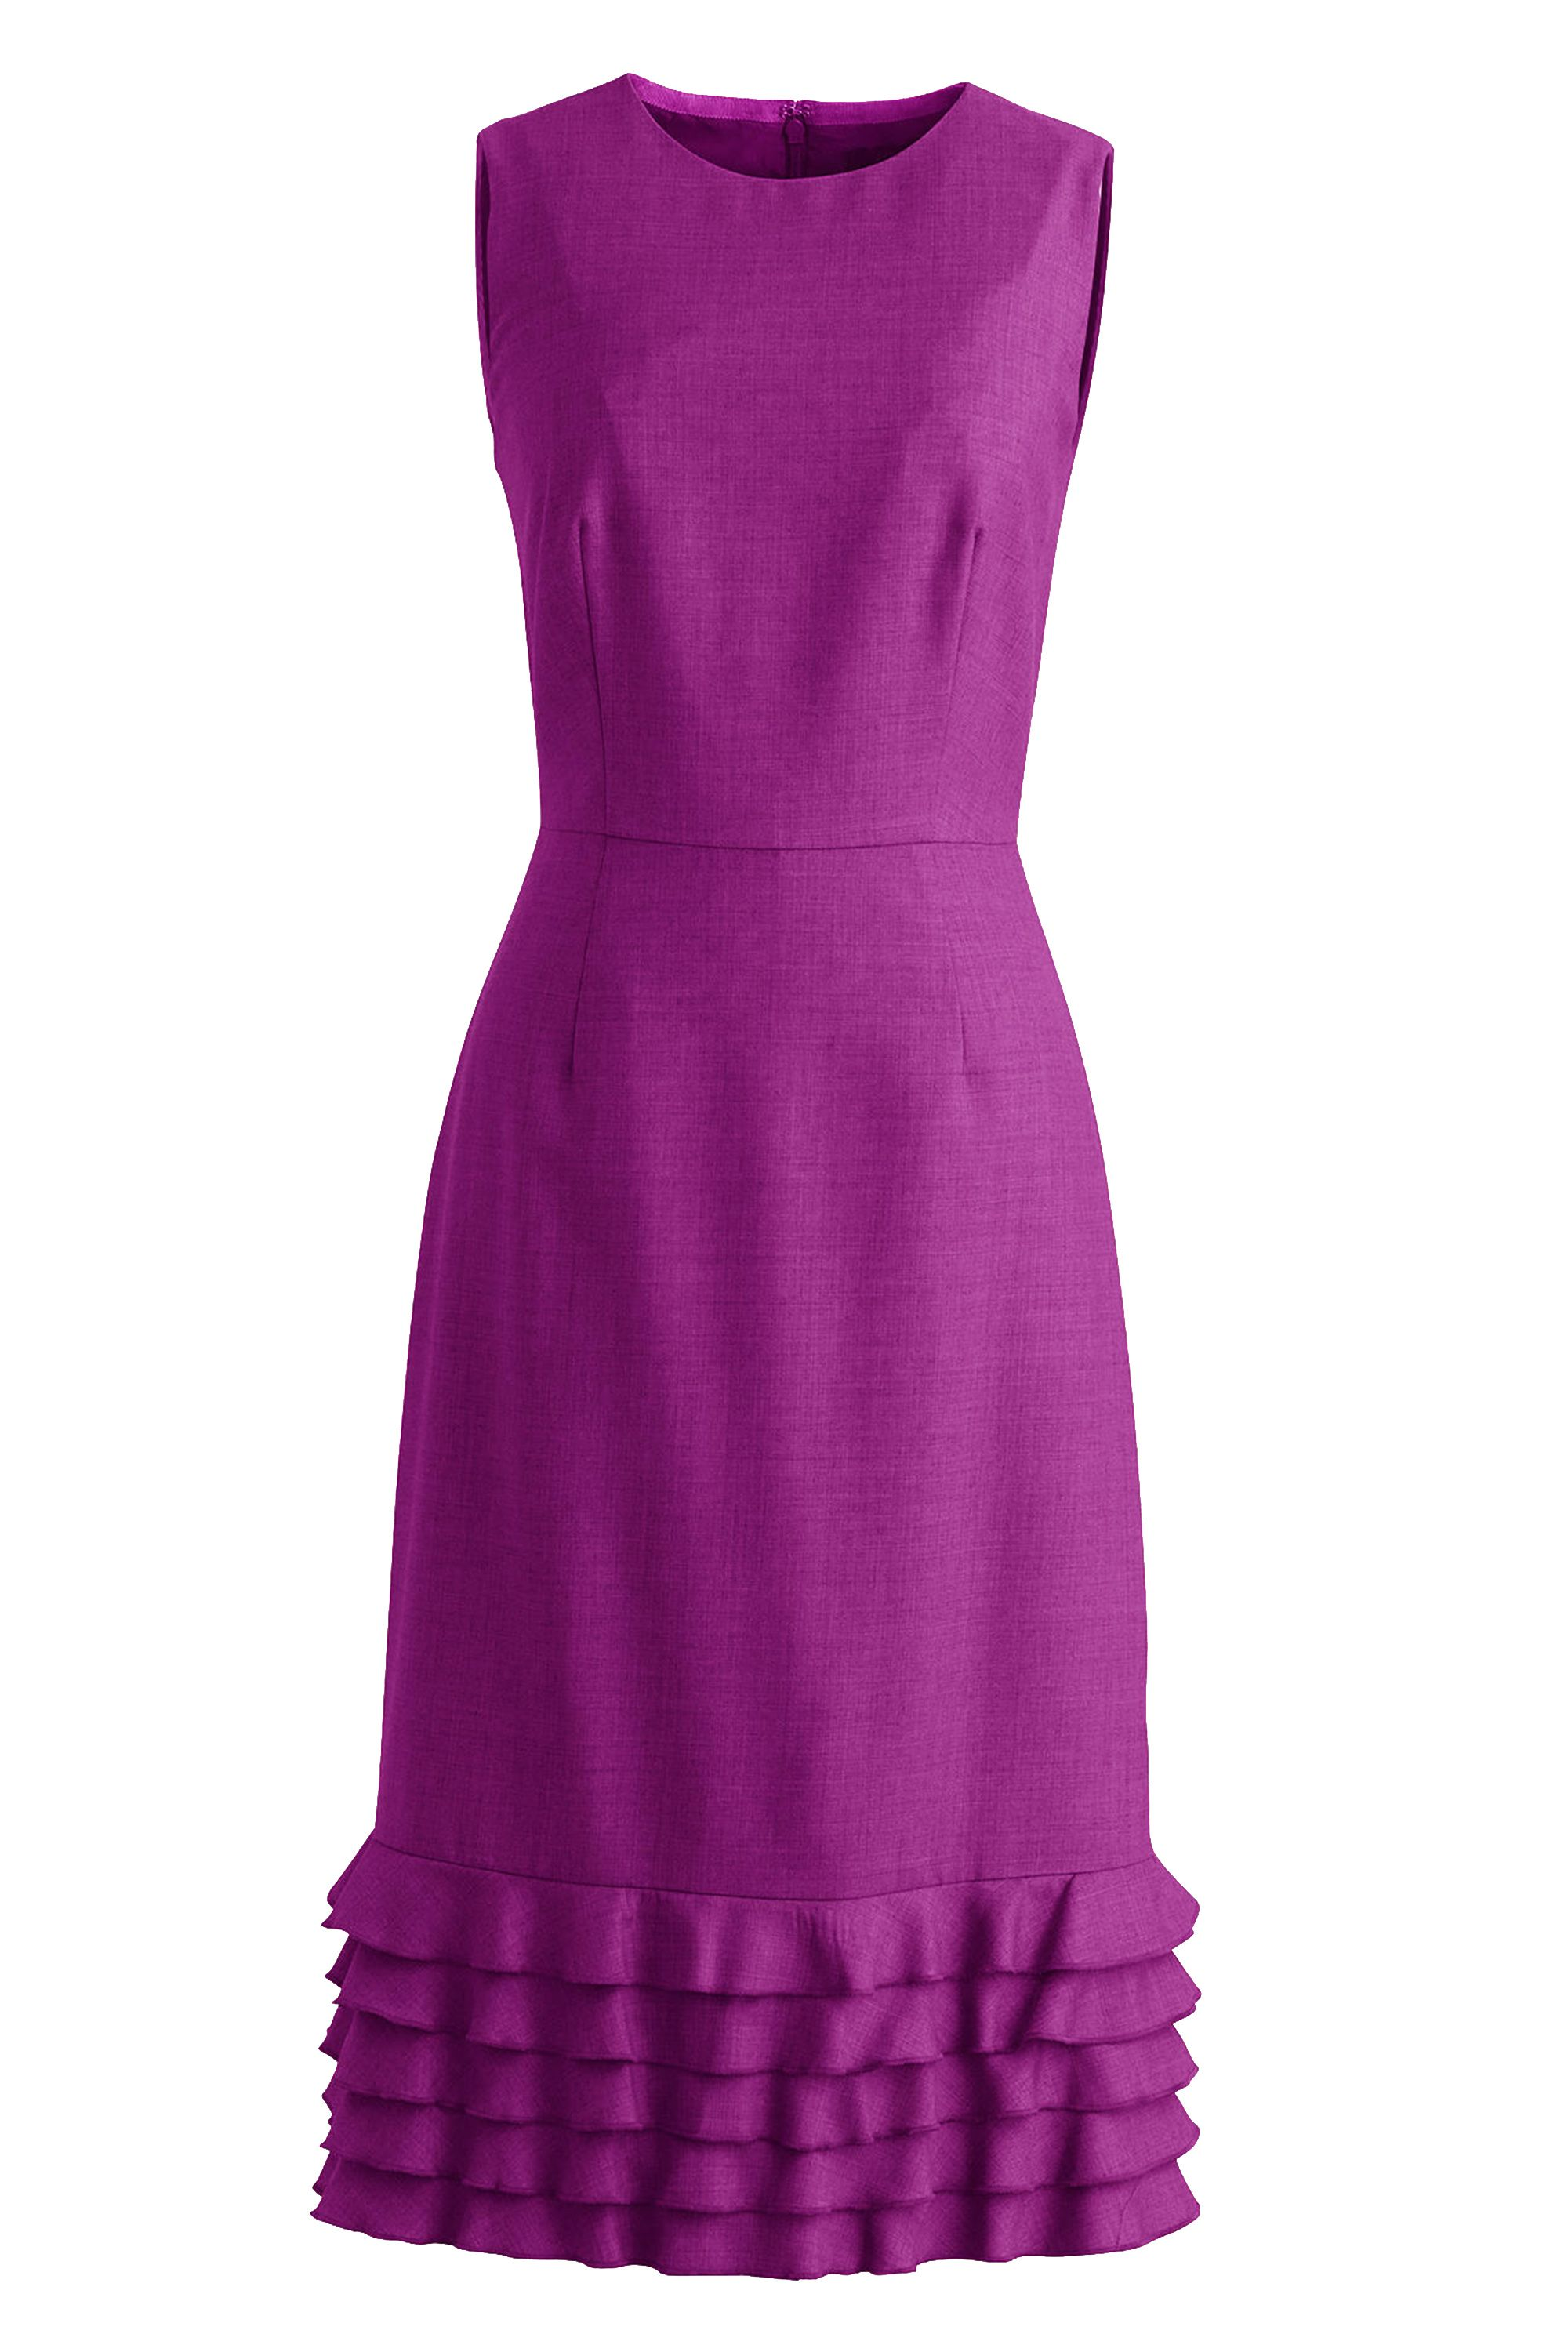 13 Guest Dresses That Are Perfect for a Fall Wedding ...